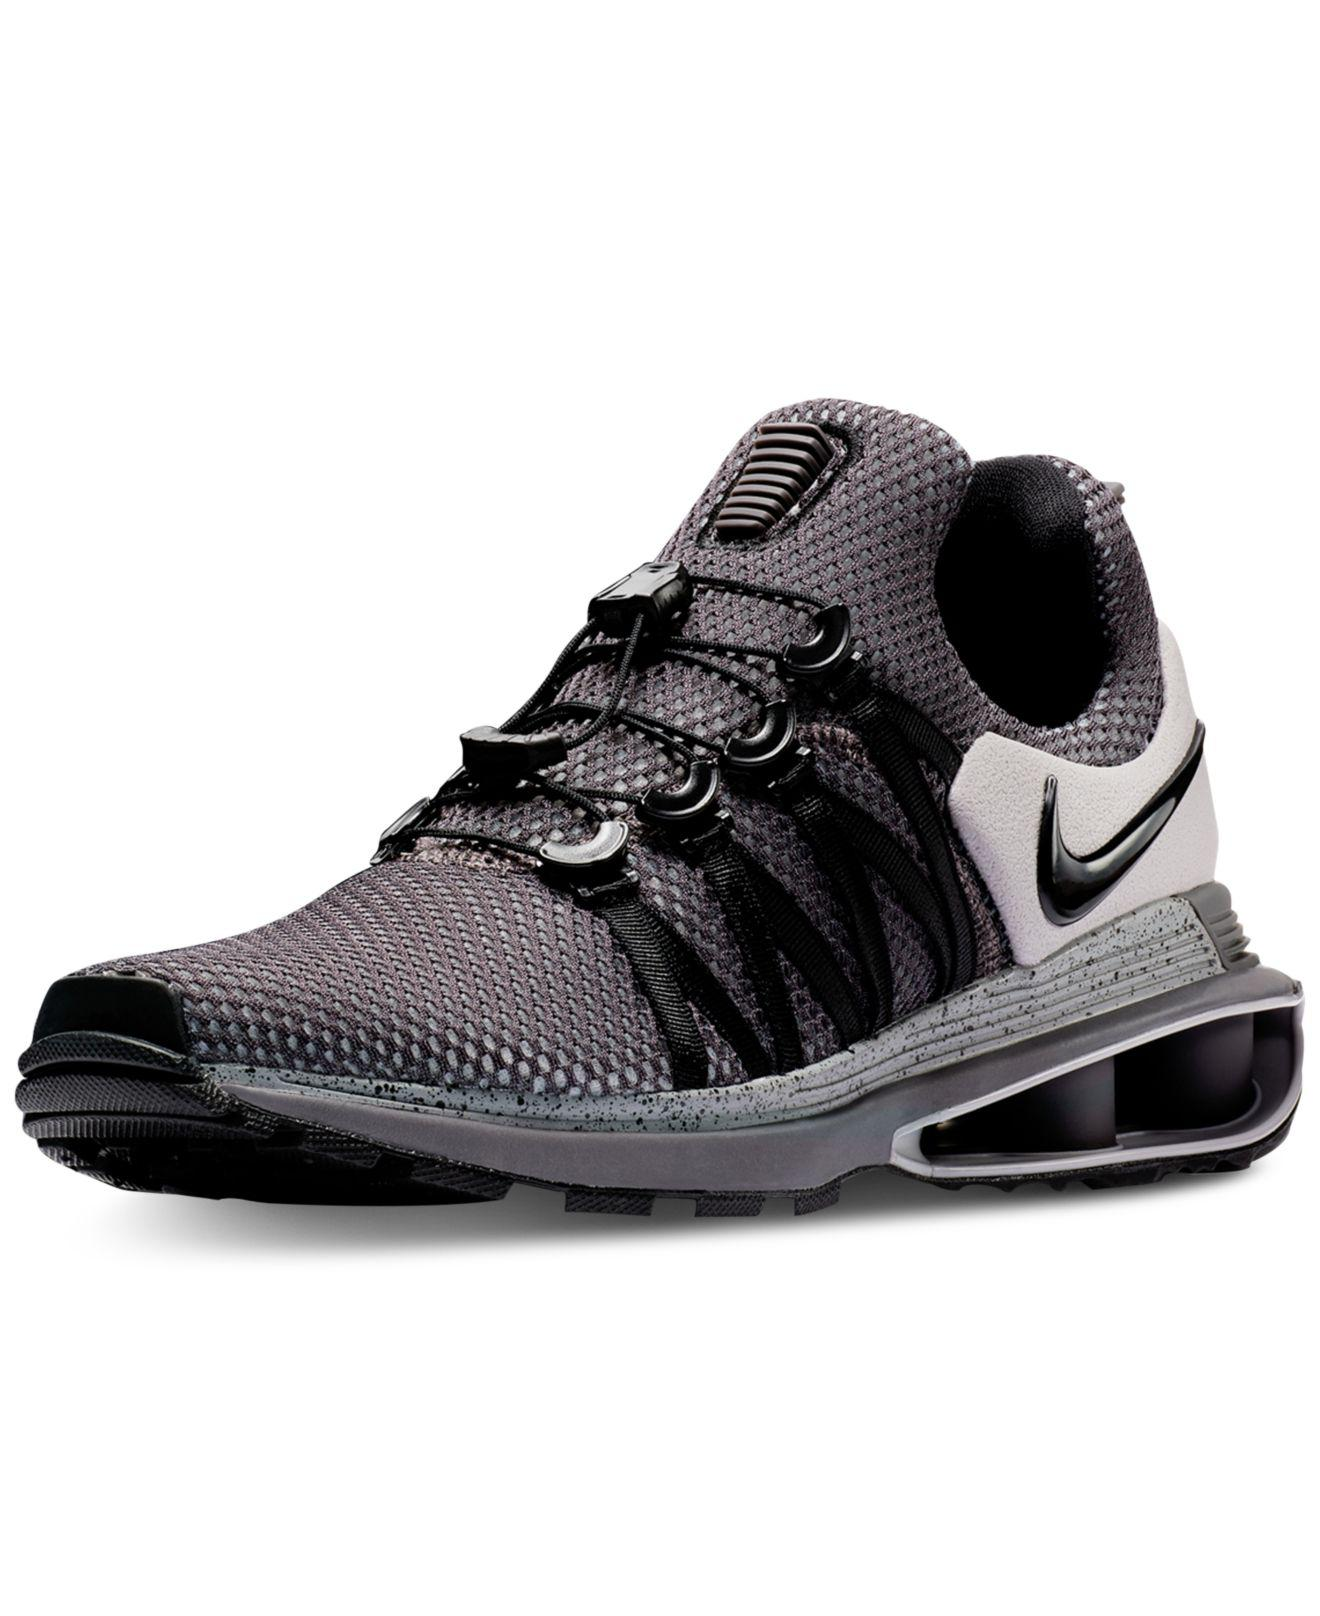 on sale 31239 959e1 Lyst - Nike Shox Gravity Casual Sneakers From Finish Line in Black ...